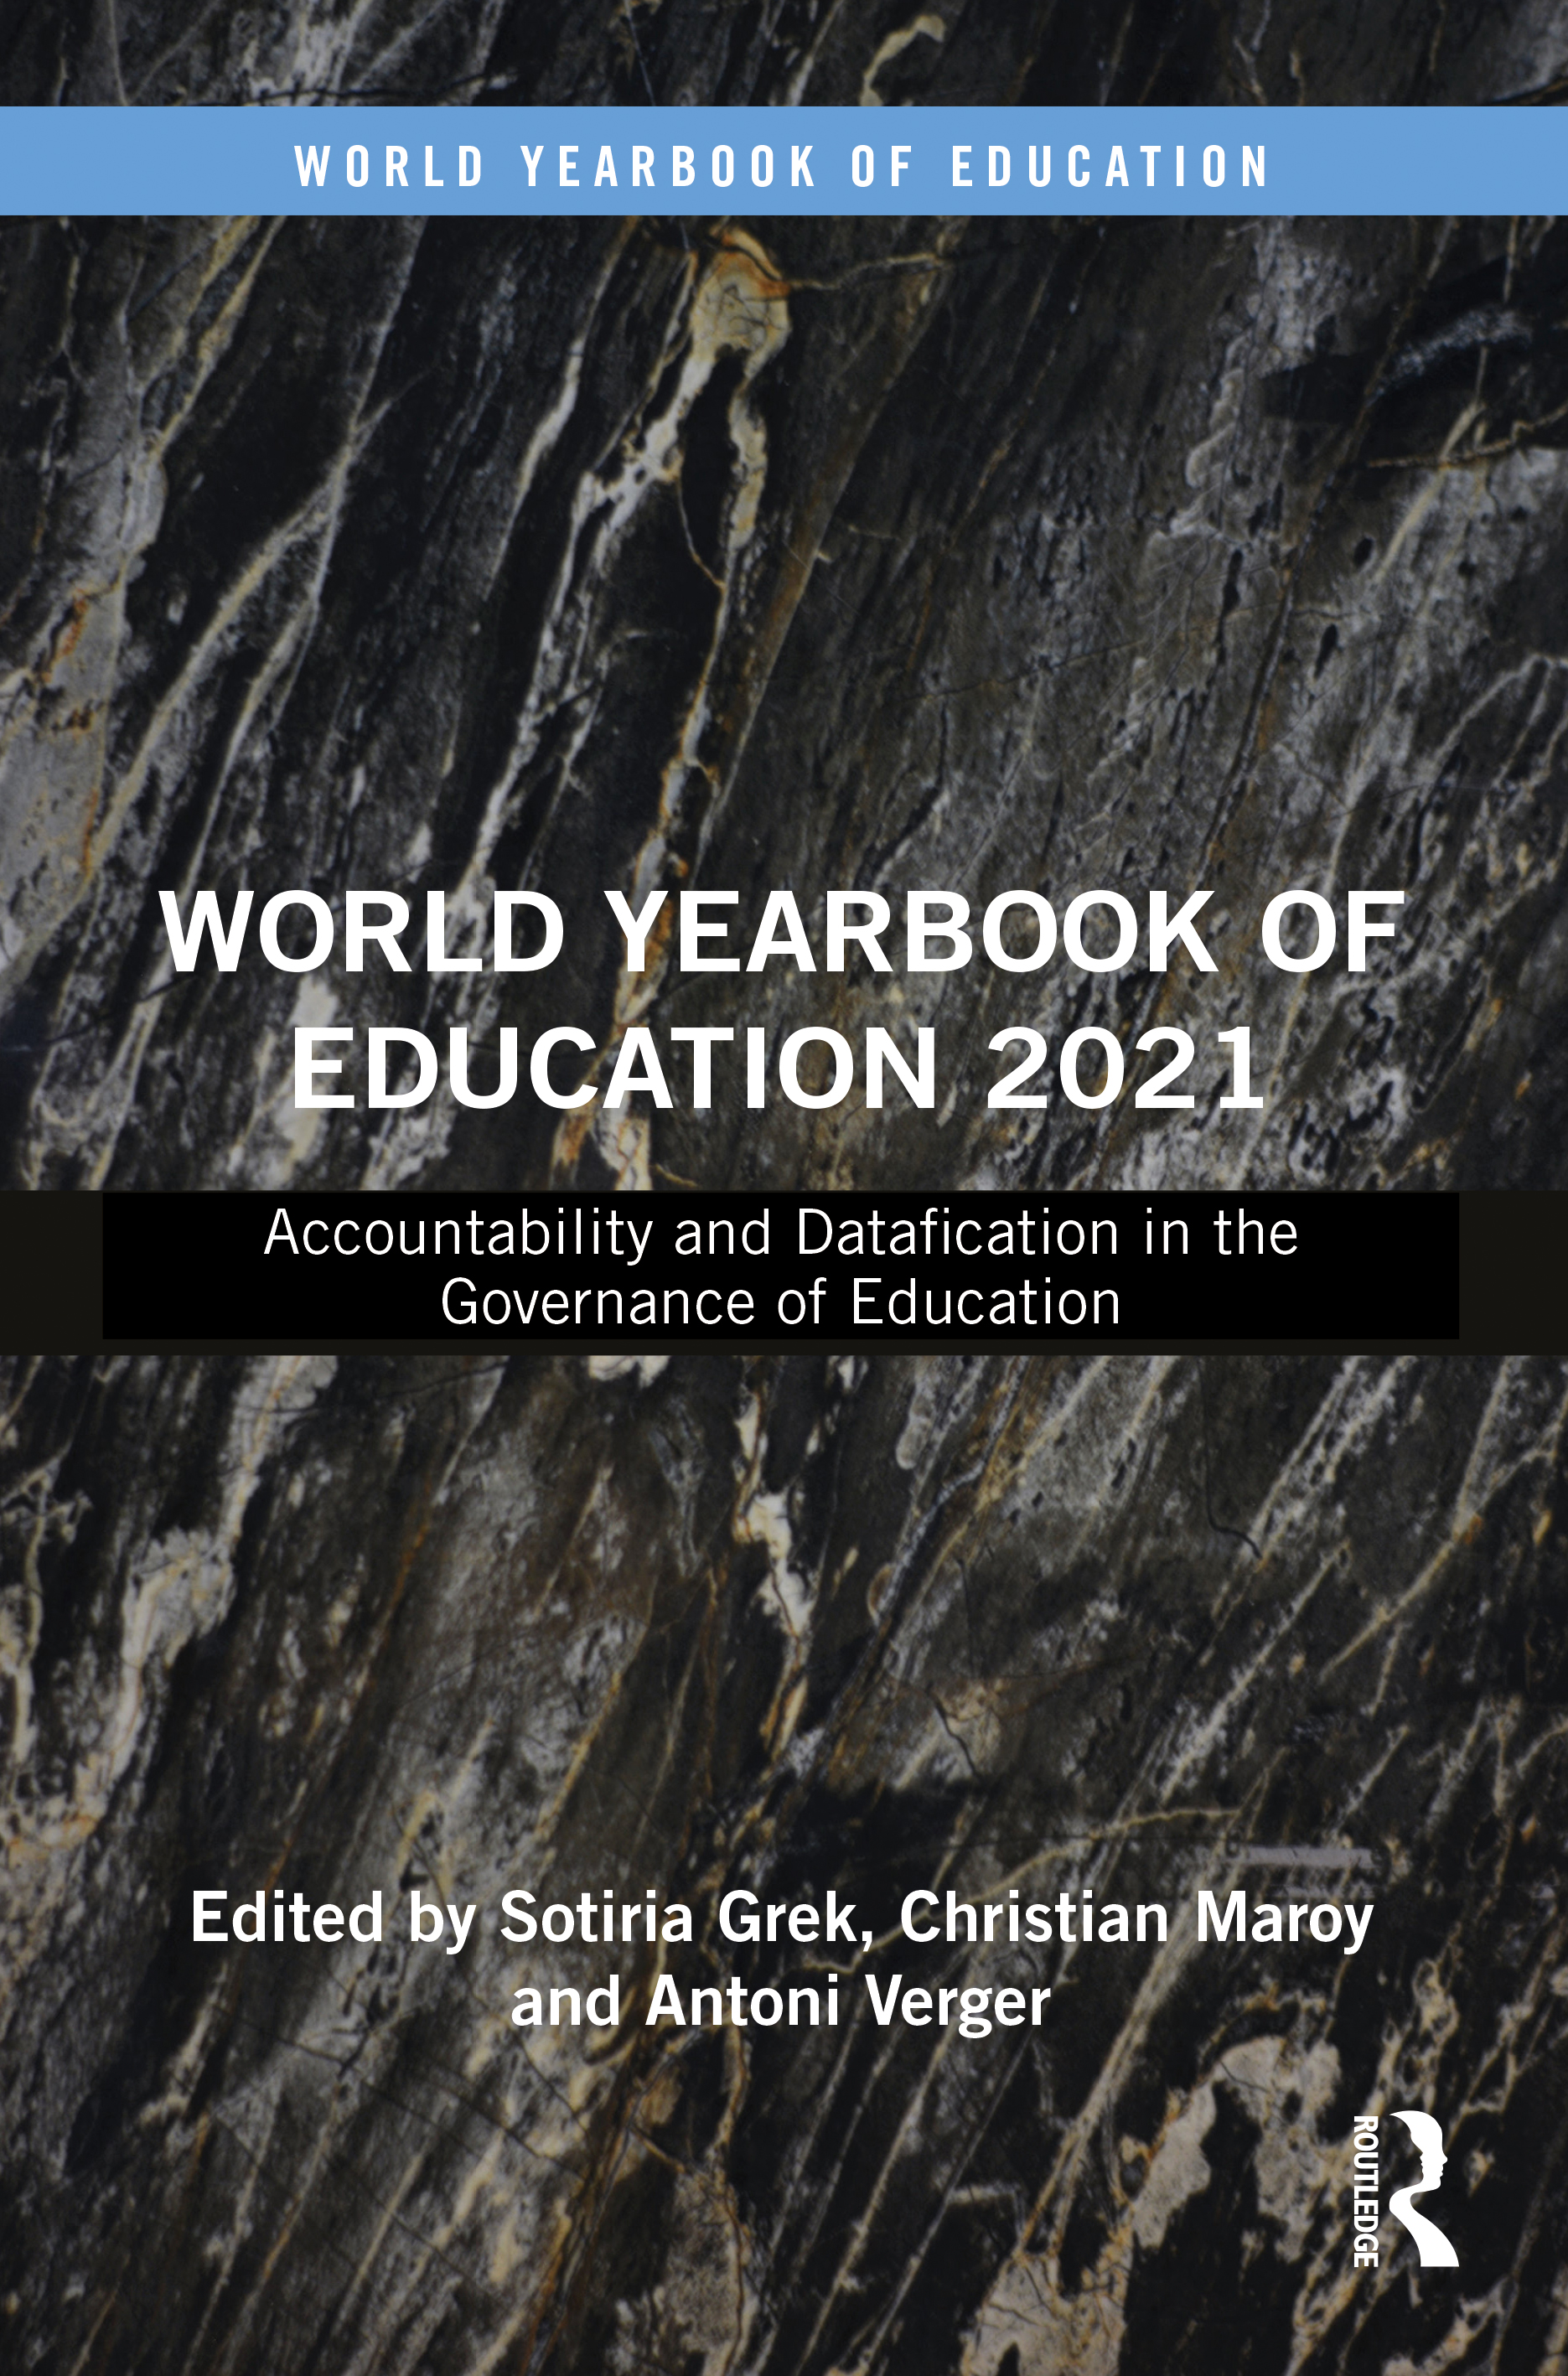 World Yearbook of Education 2021